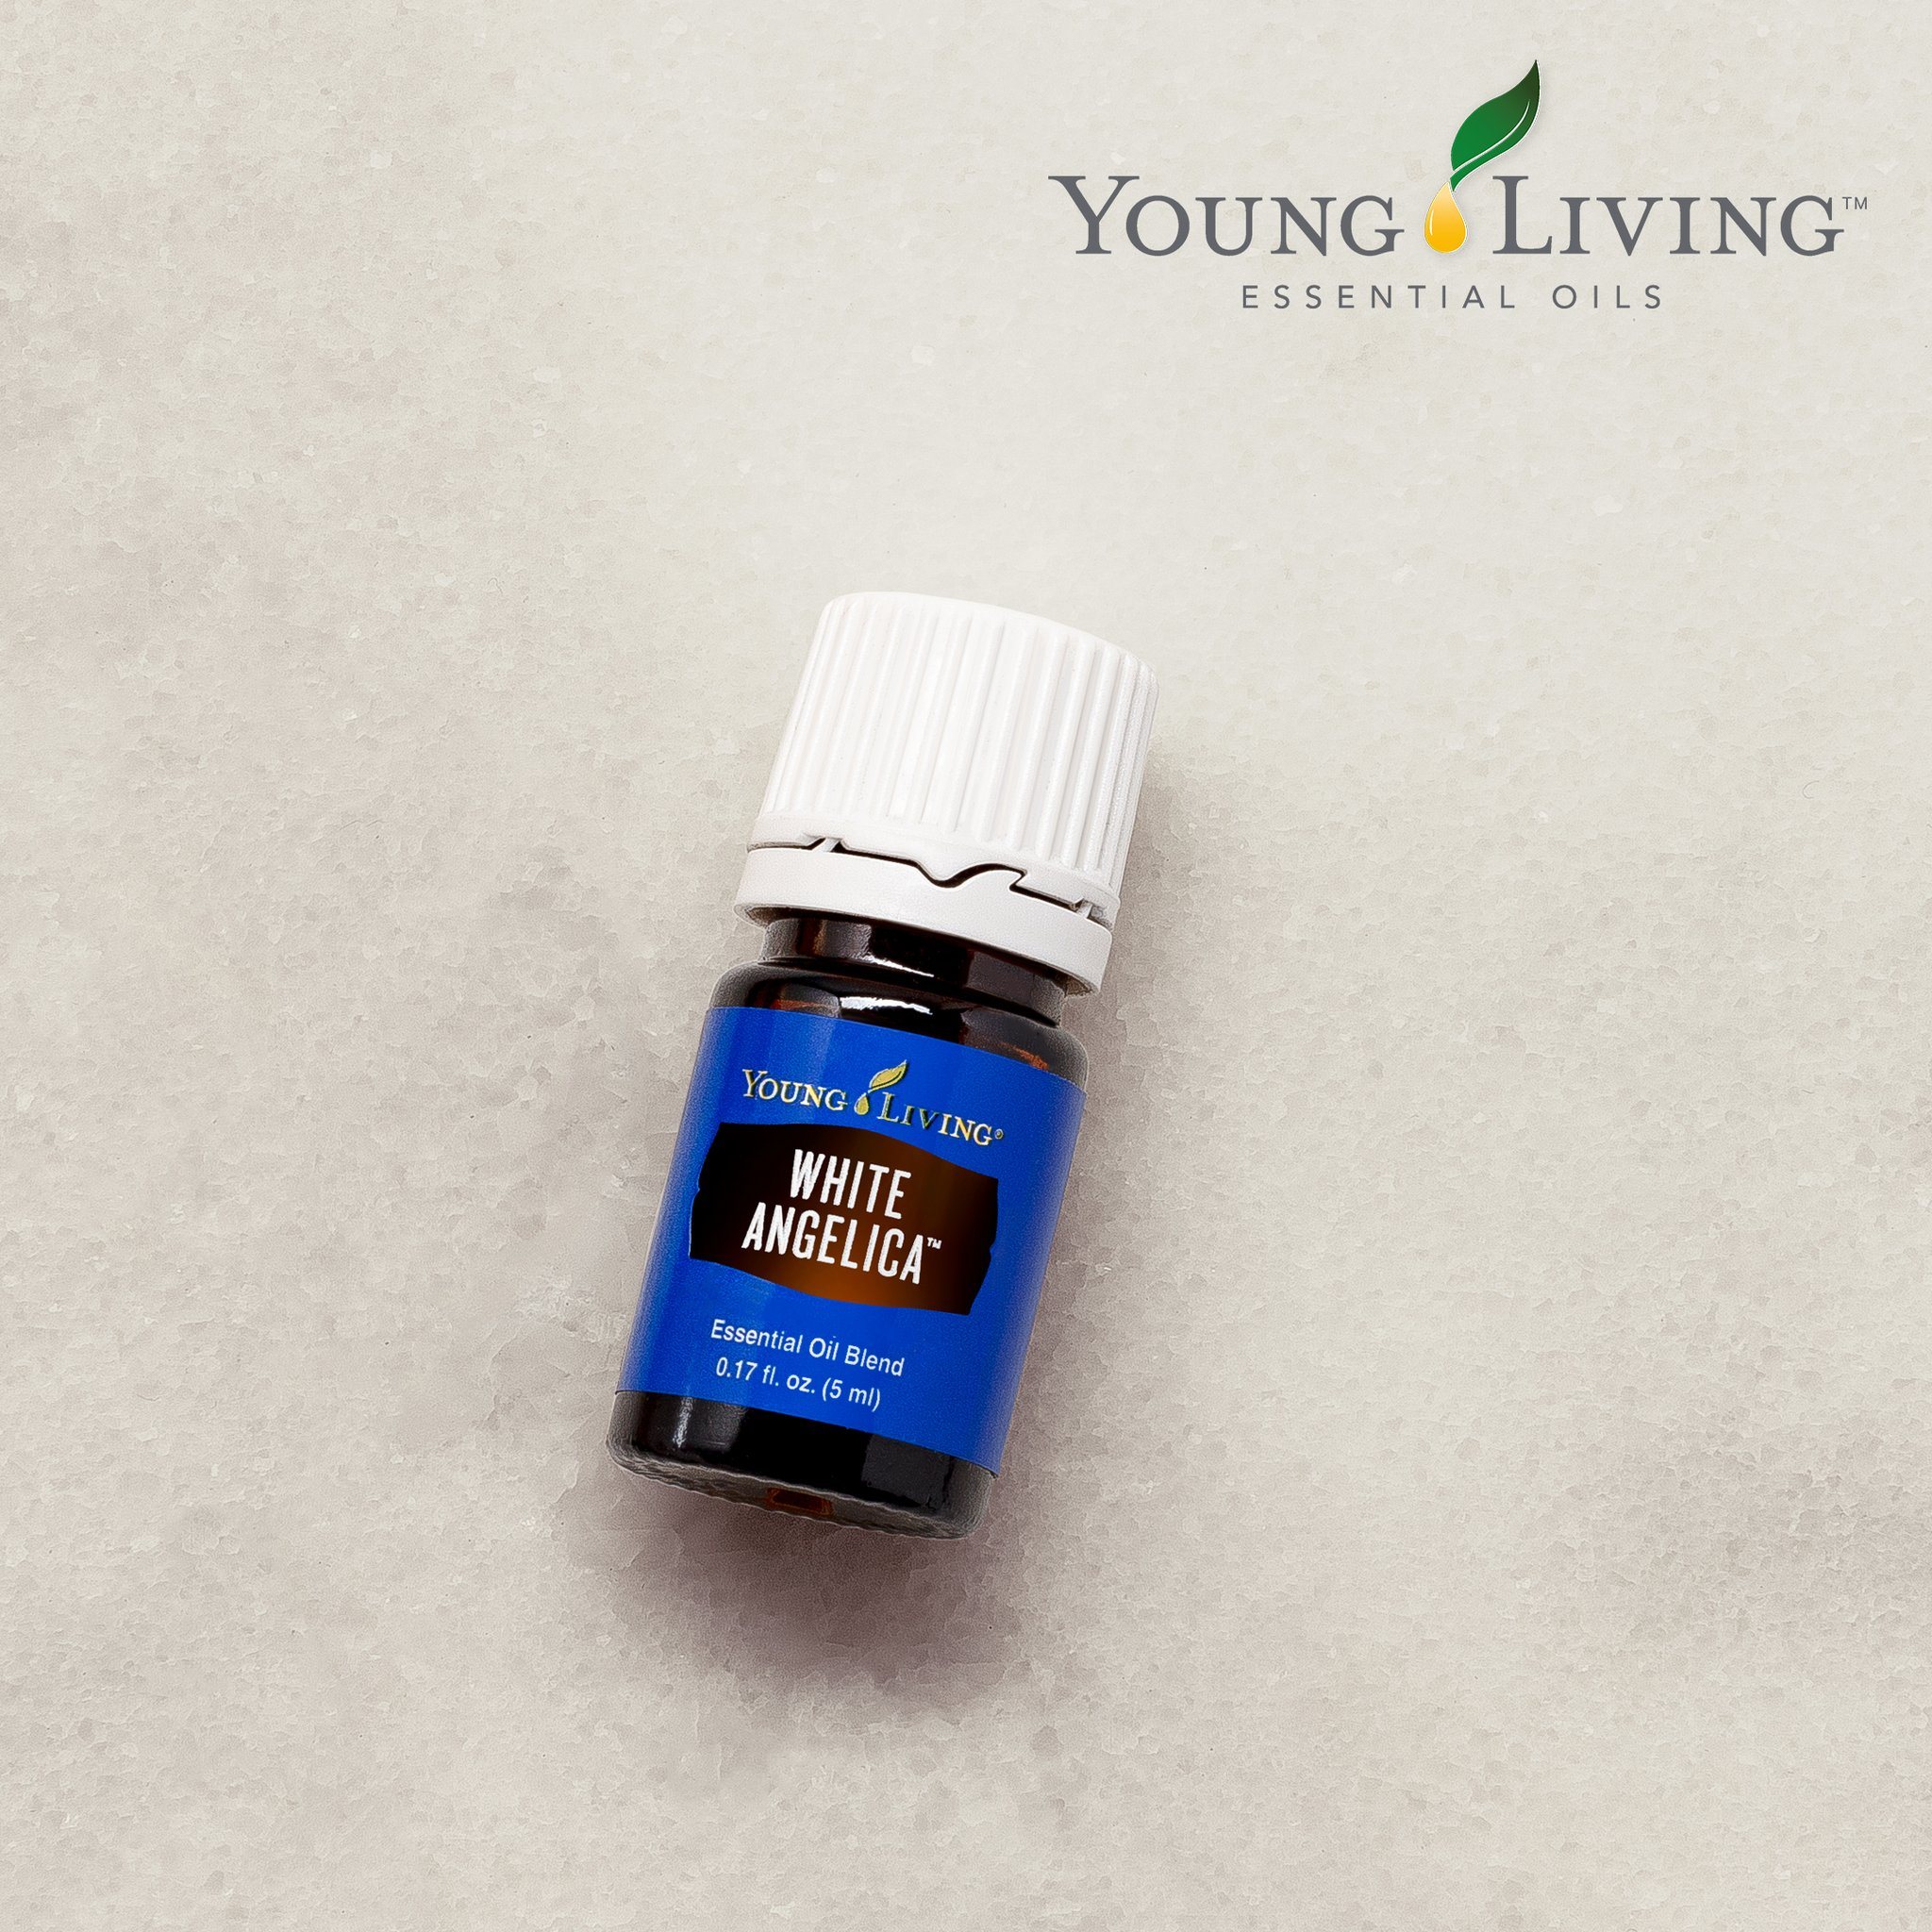 Young Living Essential Oils Europe On Twitter Use White Angelica Essential Oil To Bring Yourself Into A Natural State Of Emotional Wellness White Angelica Calms Soothes And Encourages Positive Feelings How